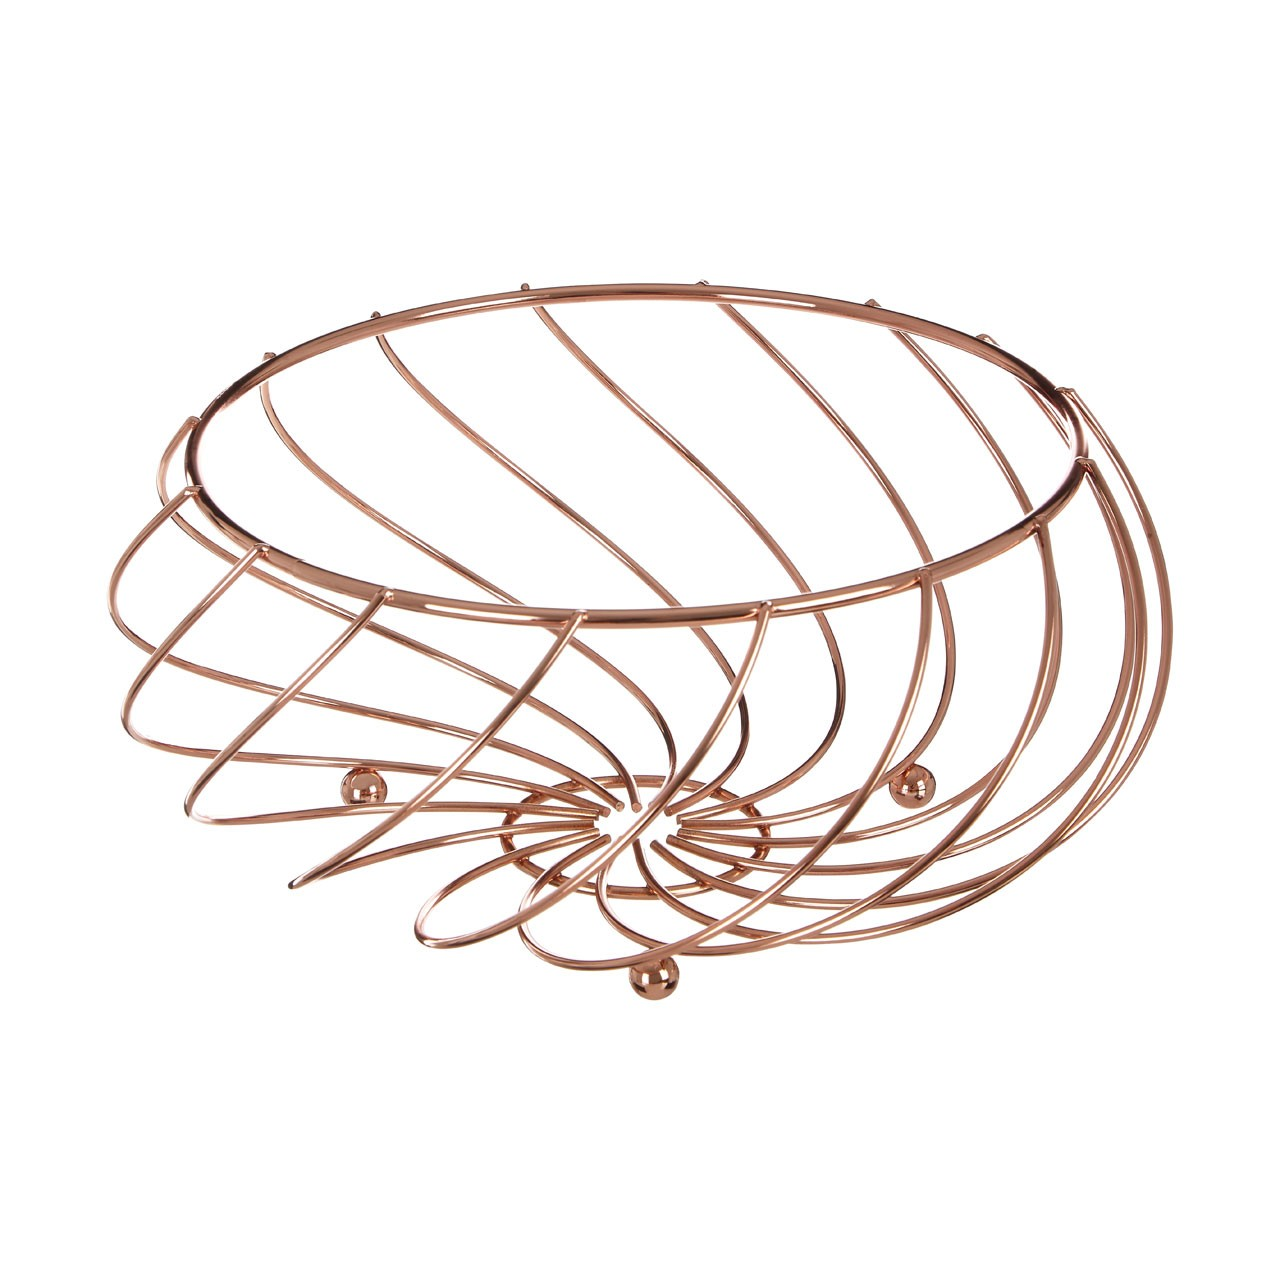 Kuper Fruit Basket - Rose Gold - Metal Wire